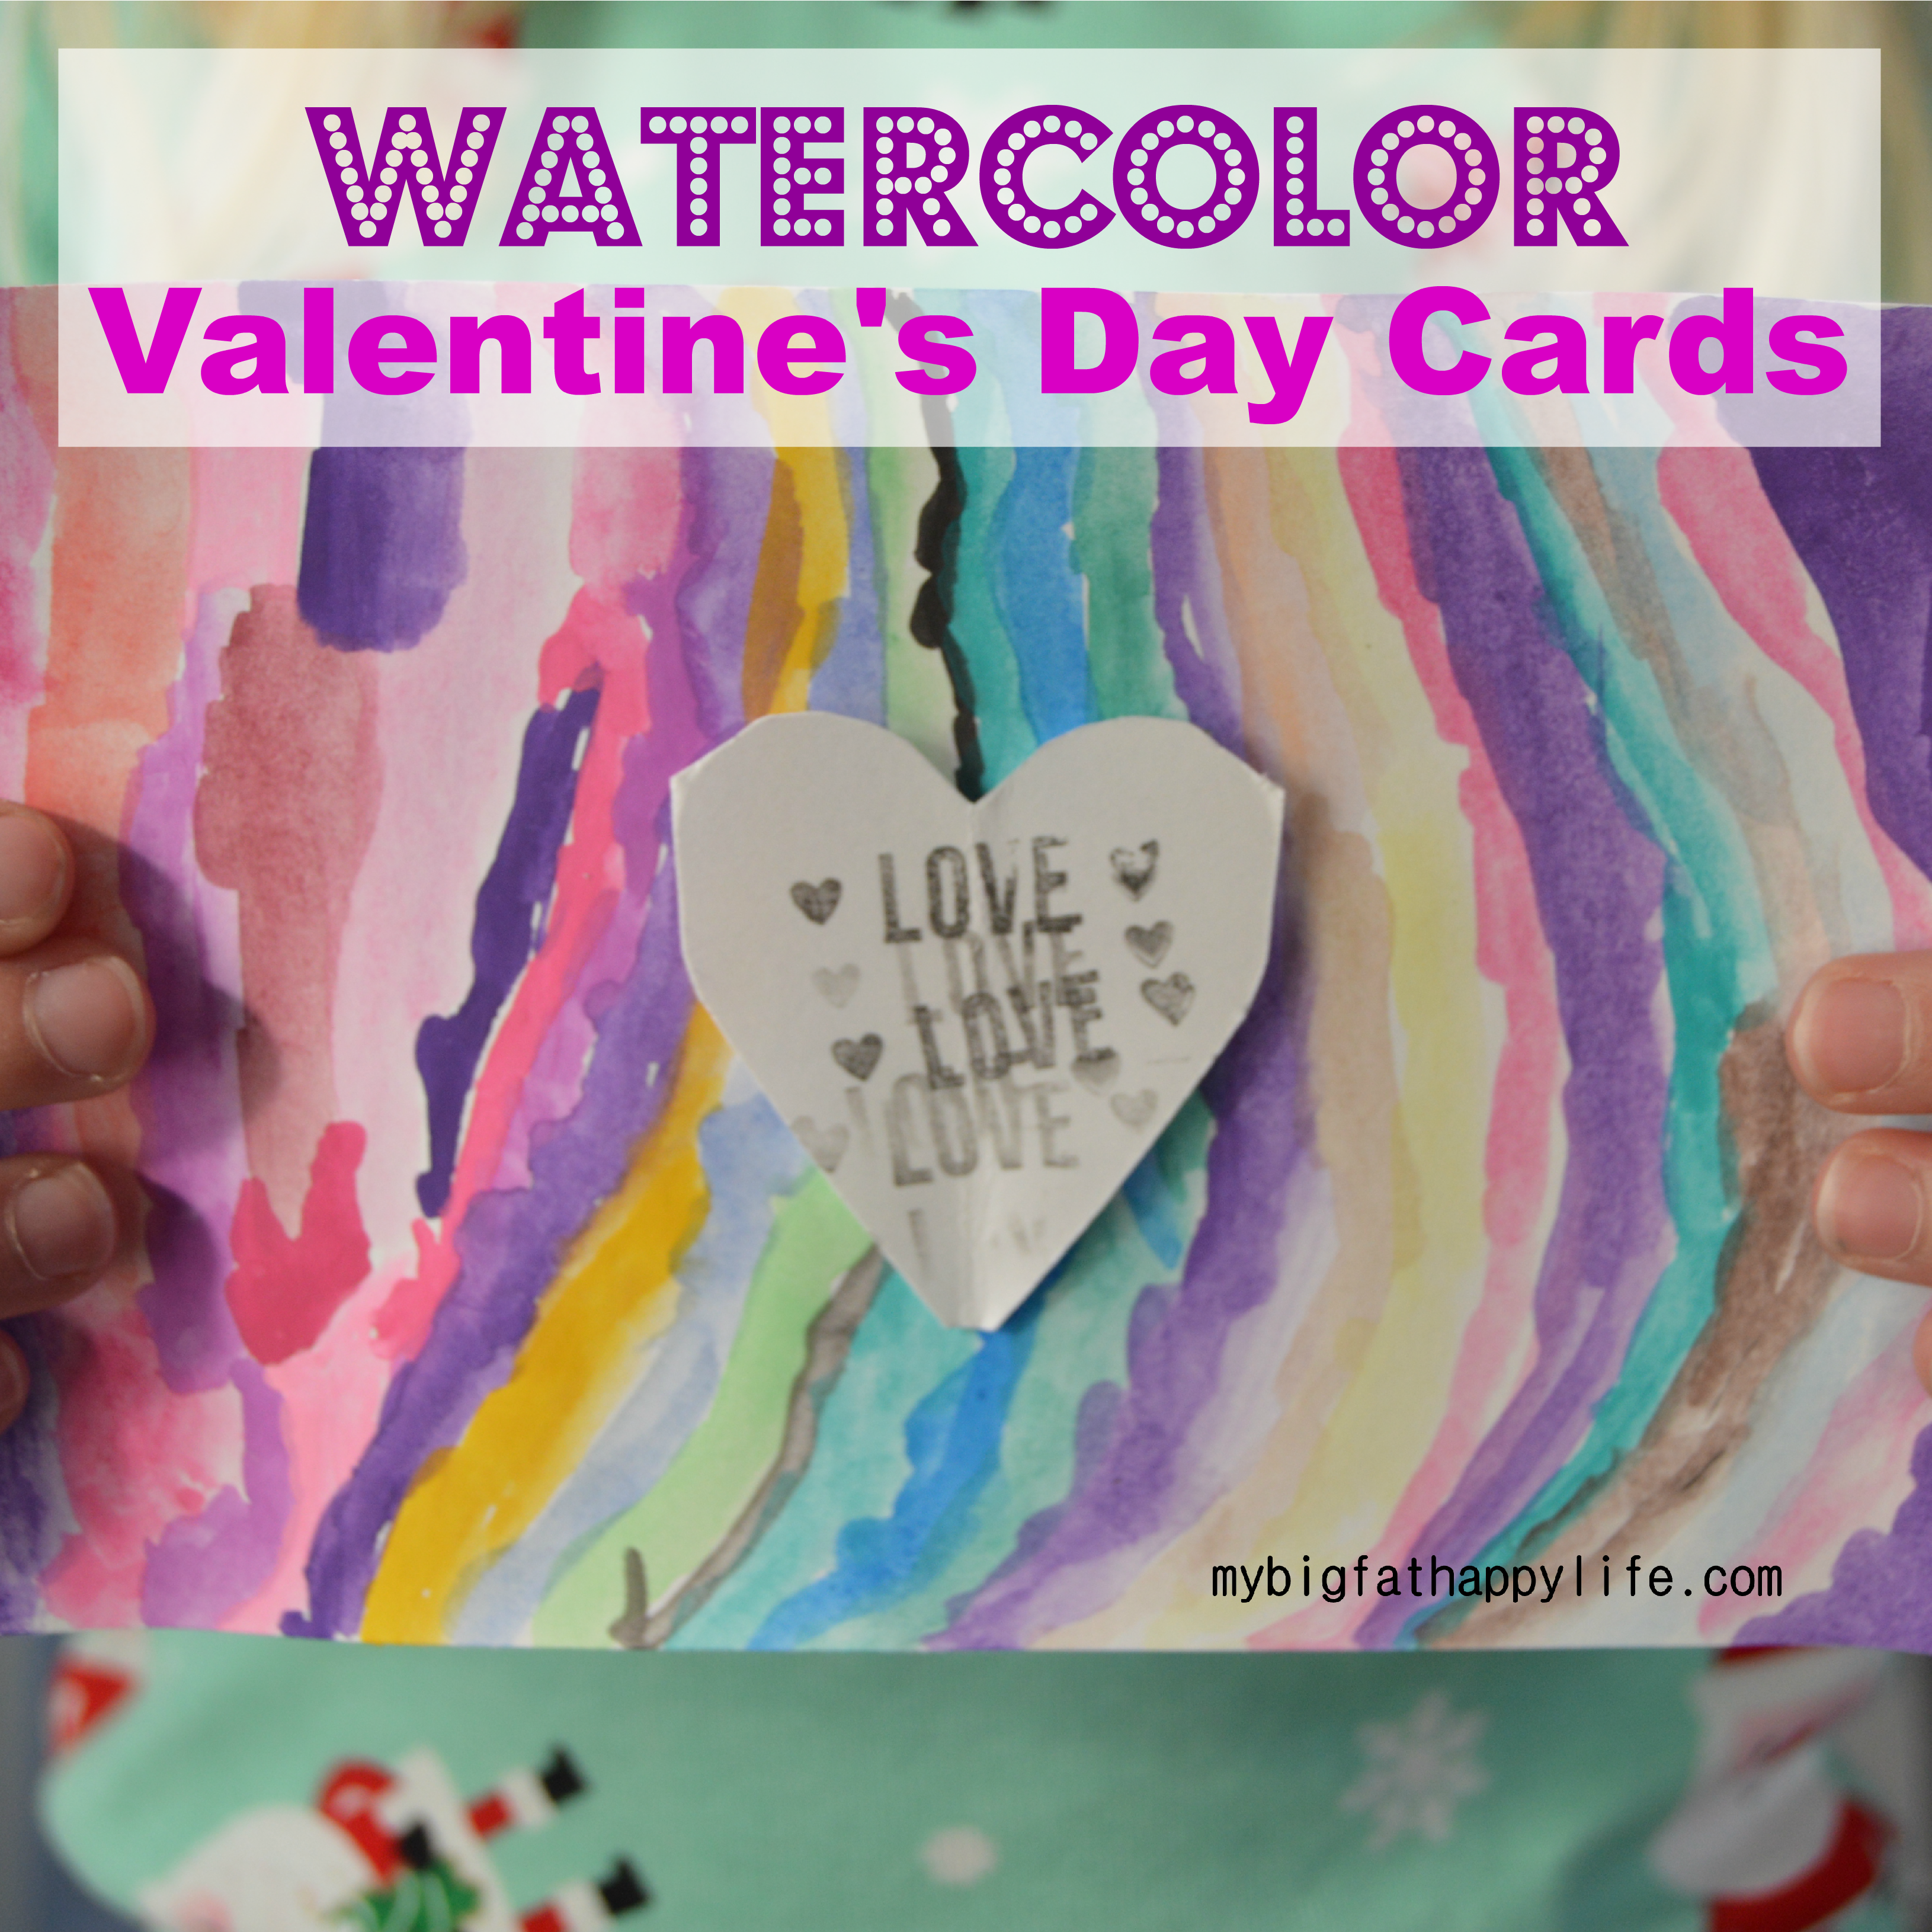 Valentines day art and crafts for preschoolers - Watercolor Valentine S Day Cards Making Valentine S Day Cards For Kids Arts And Crafts